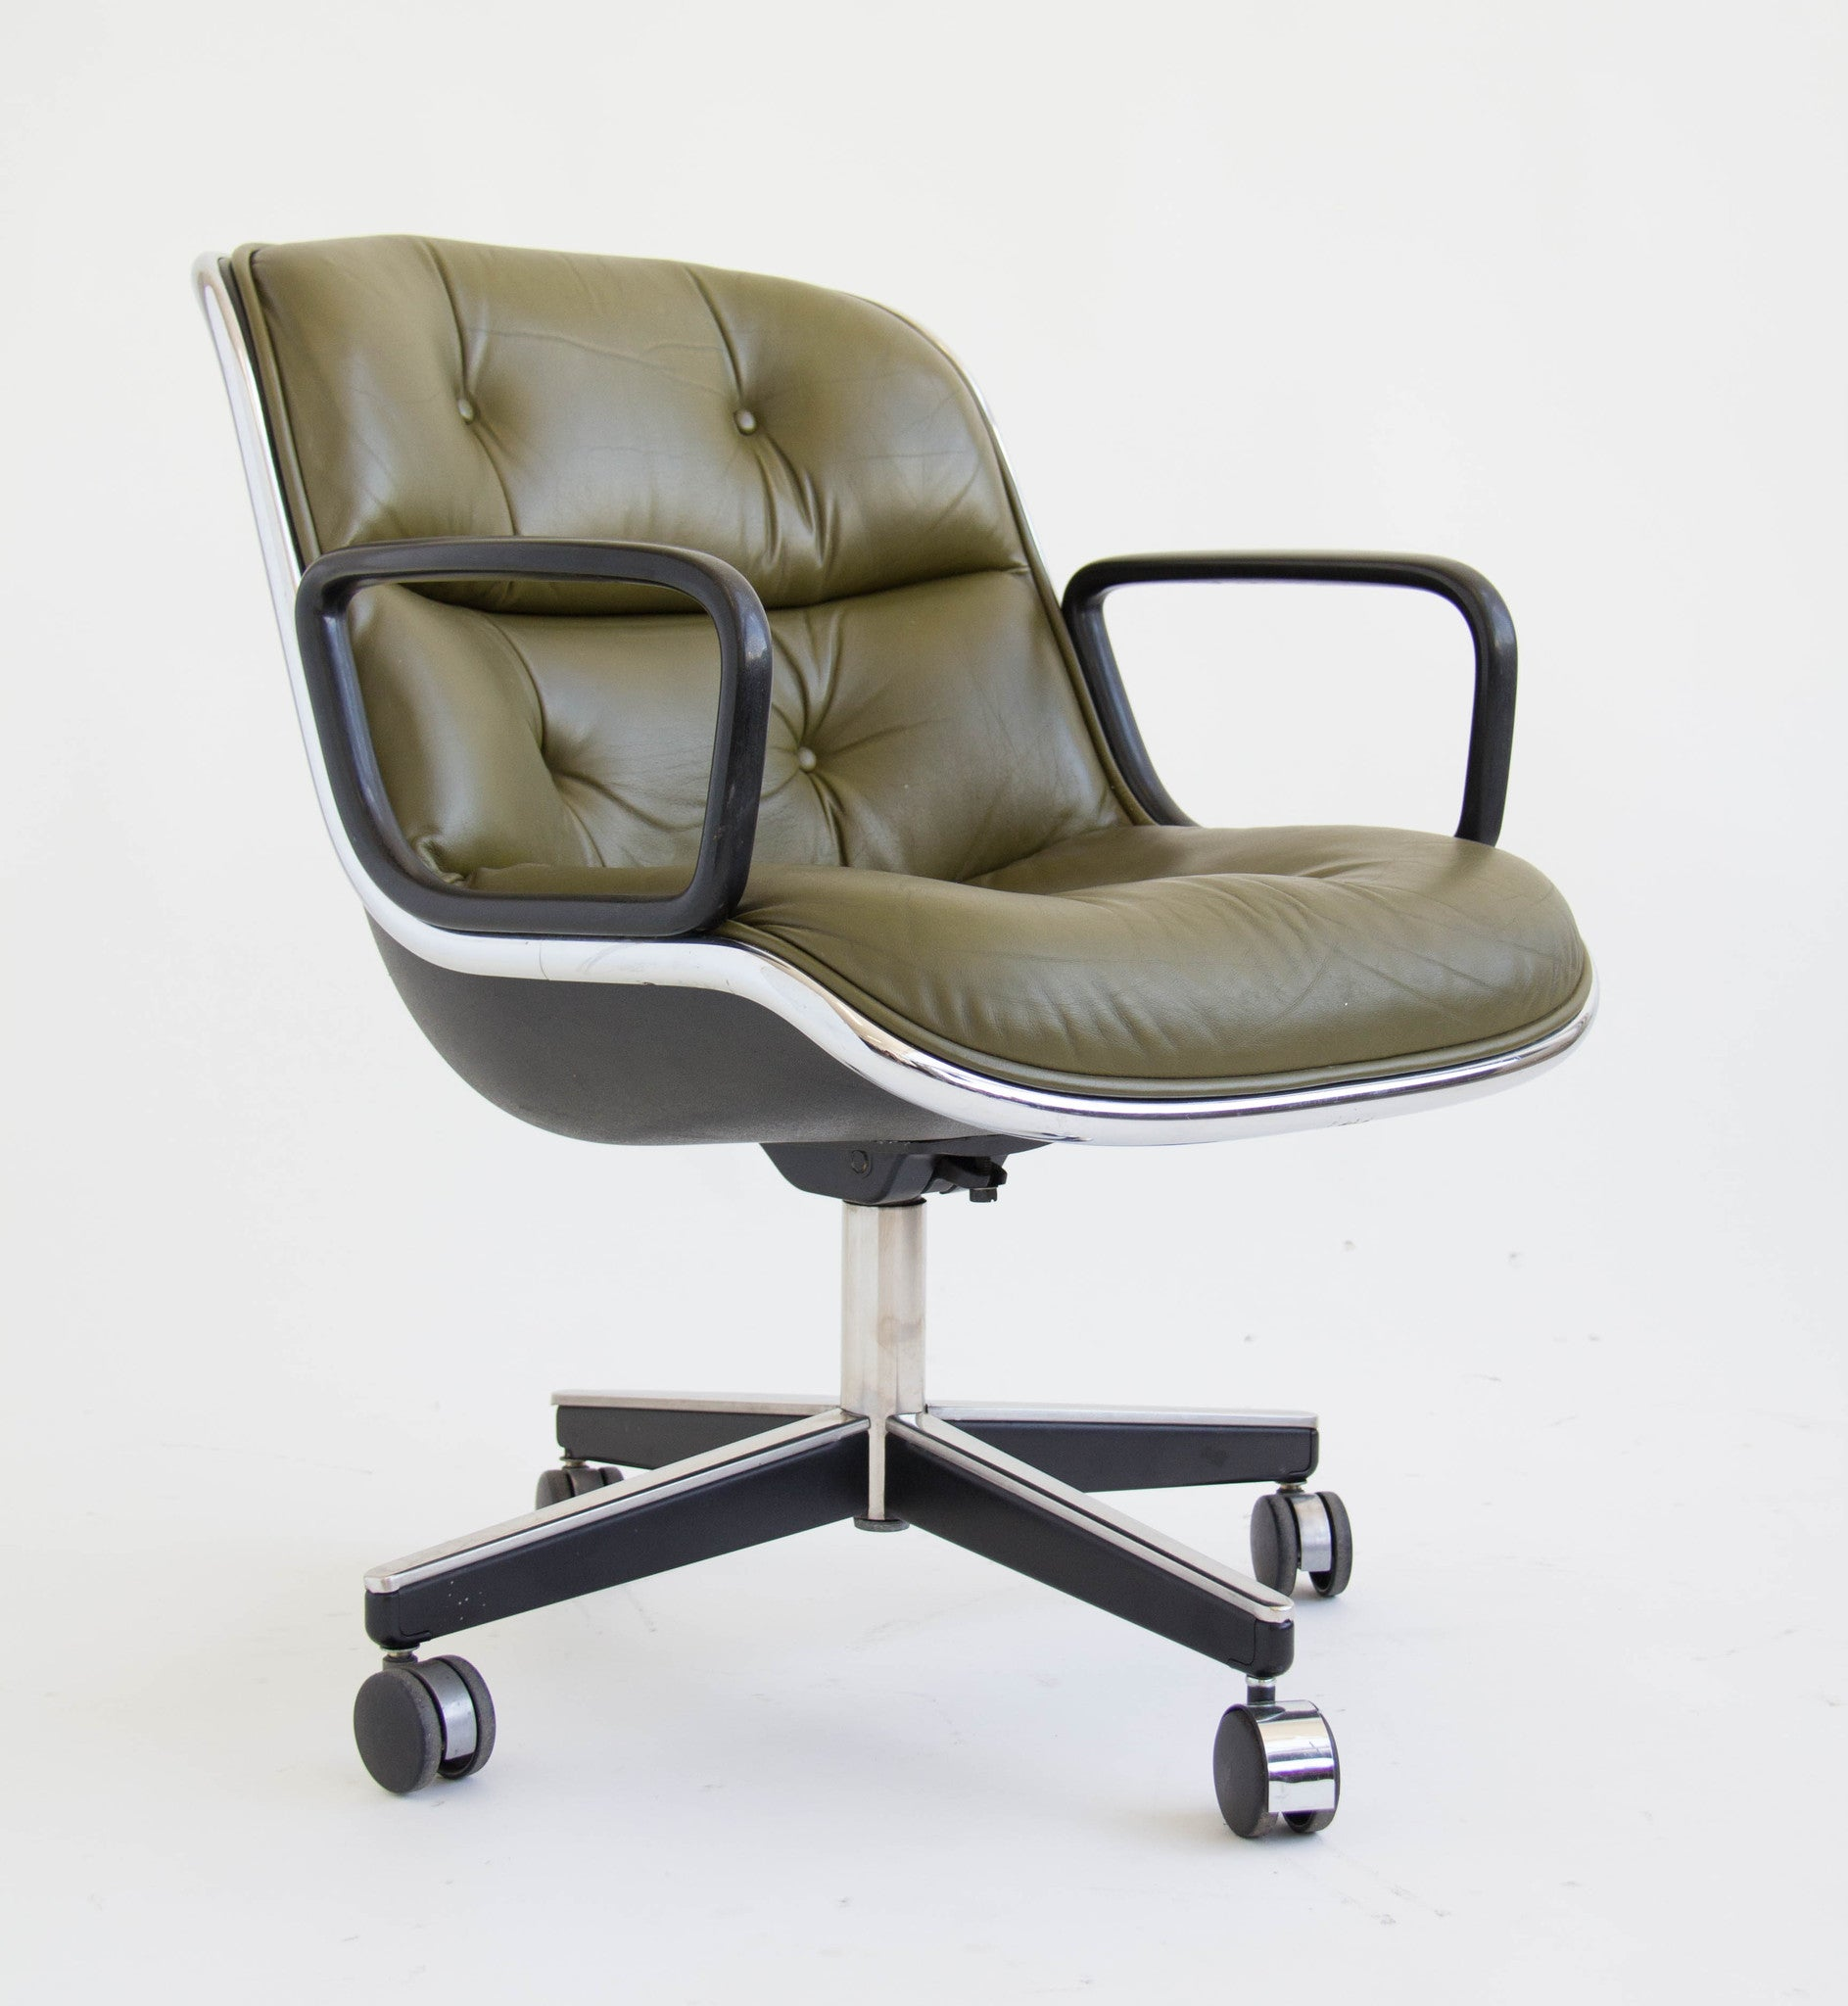 green leather office chair by charles pollock for knoll – den møbler - green leather office chair by charles pollock for knoll